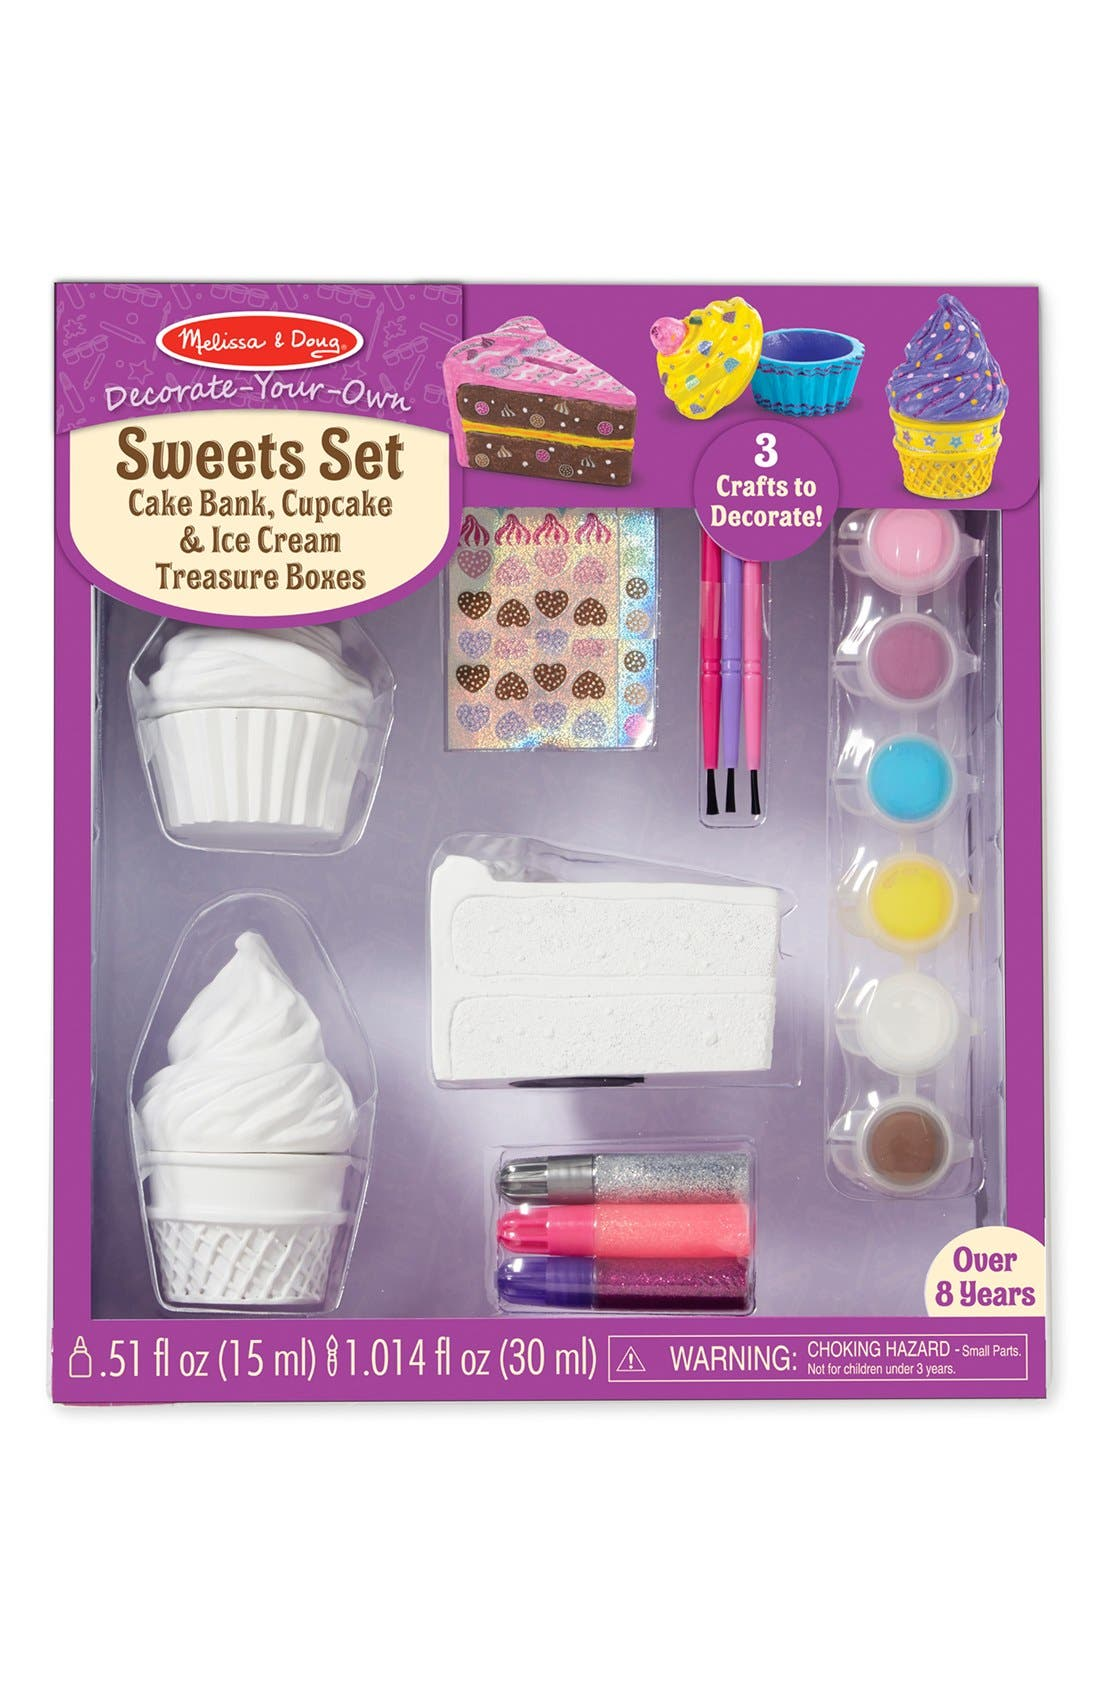 Alternate Image 1 Selected - Melissa & Doug 'Decorate Your Own - Sweets' Craft Kit